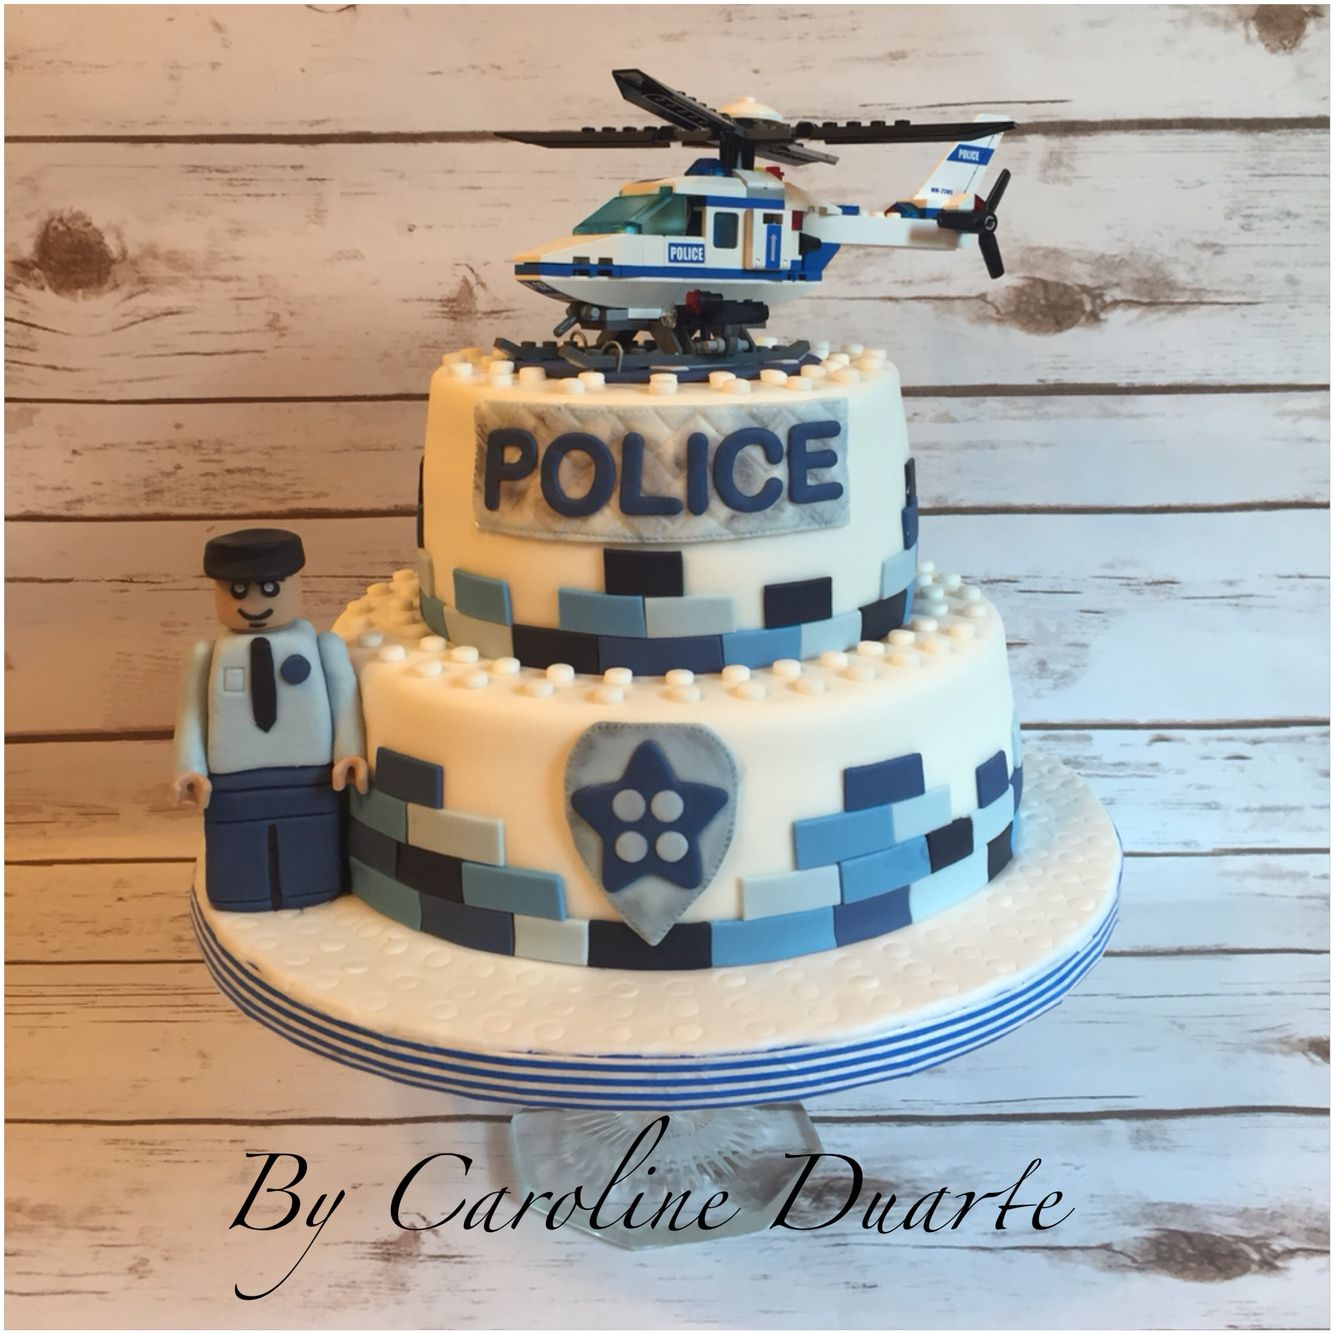 Polizei Kuchen Lego Police Cake Cakes And Treats By Caroline Duarte